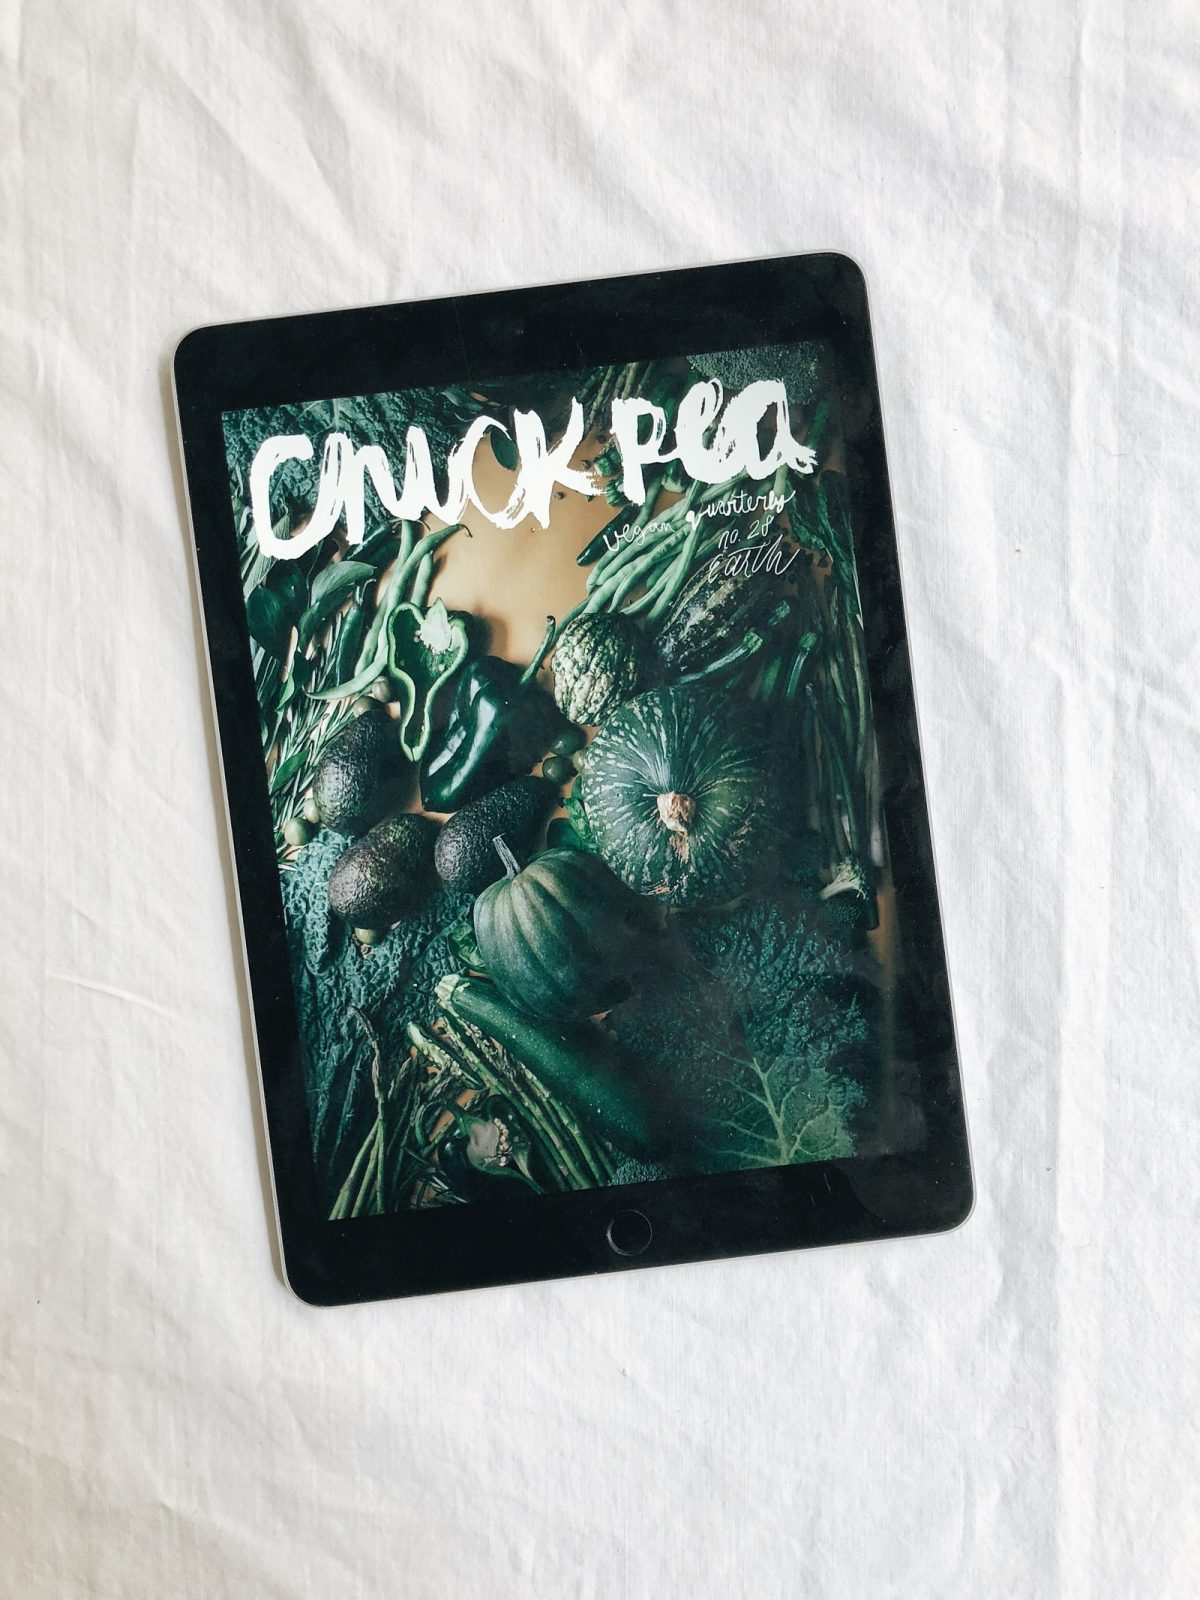 Chickpea Magazine issue 28